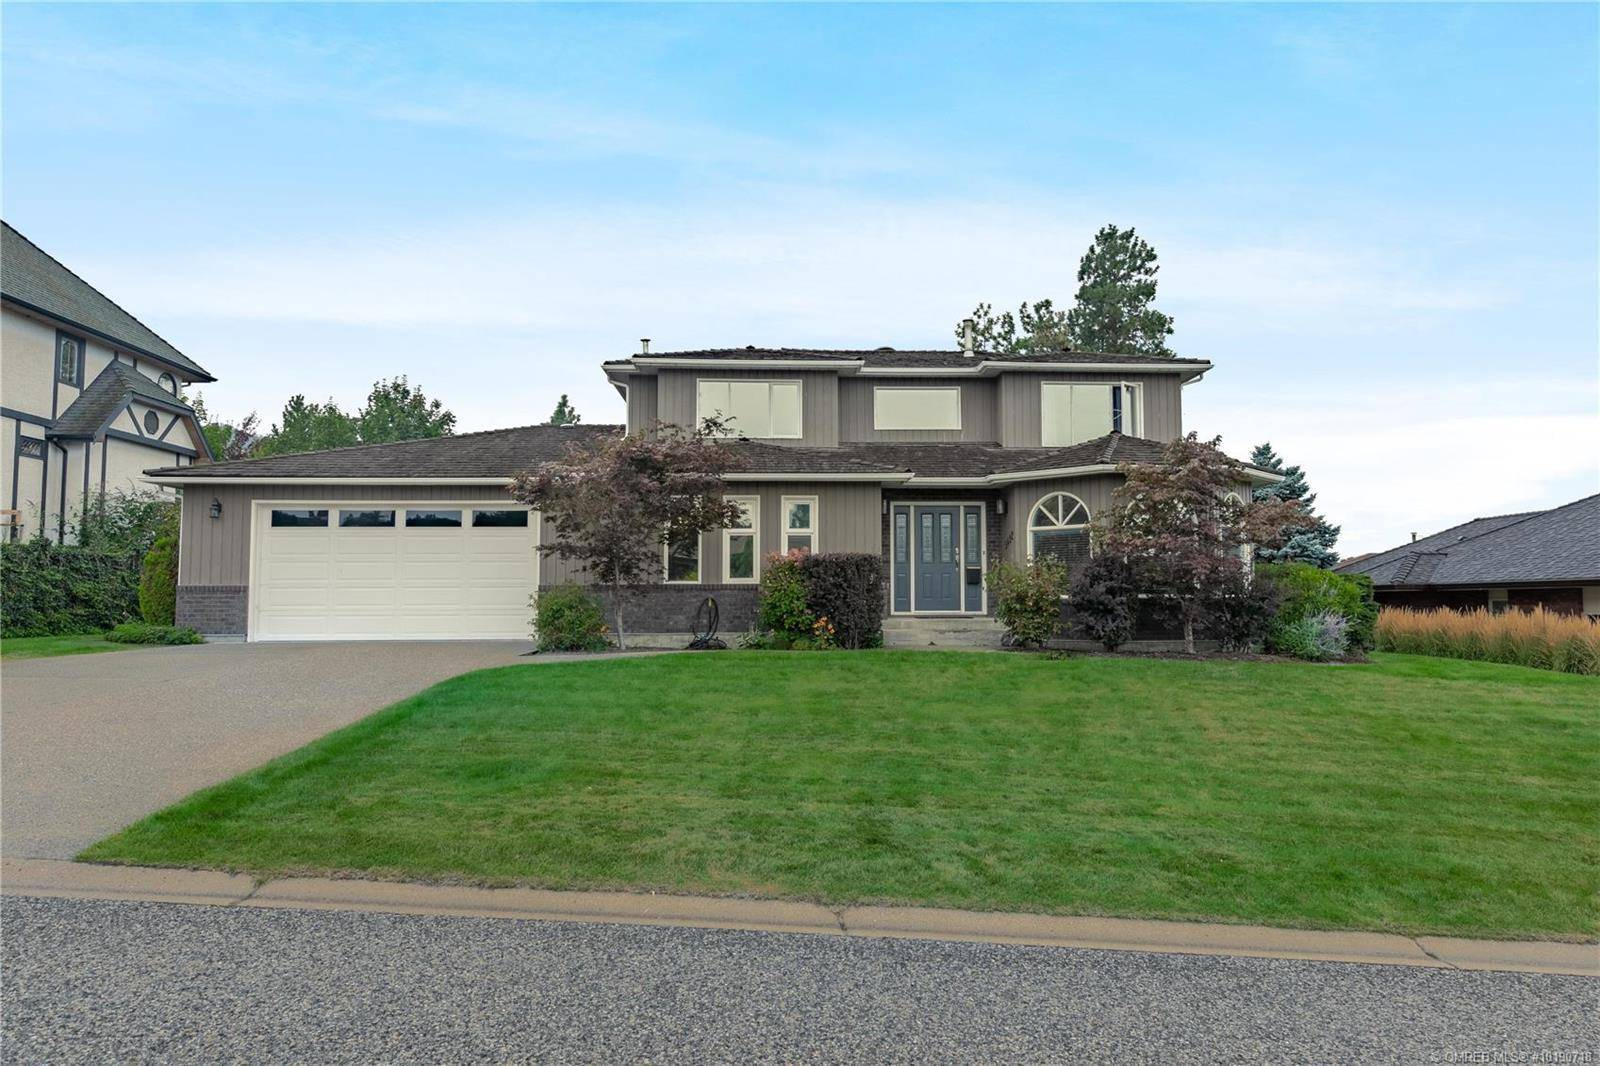 House for sale at 5422 Tanager Ct Kelowna British Columbia - MLS: 10190718